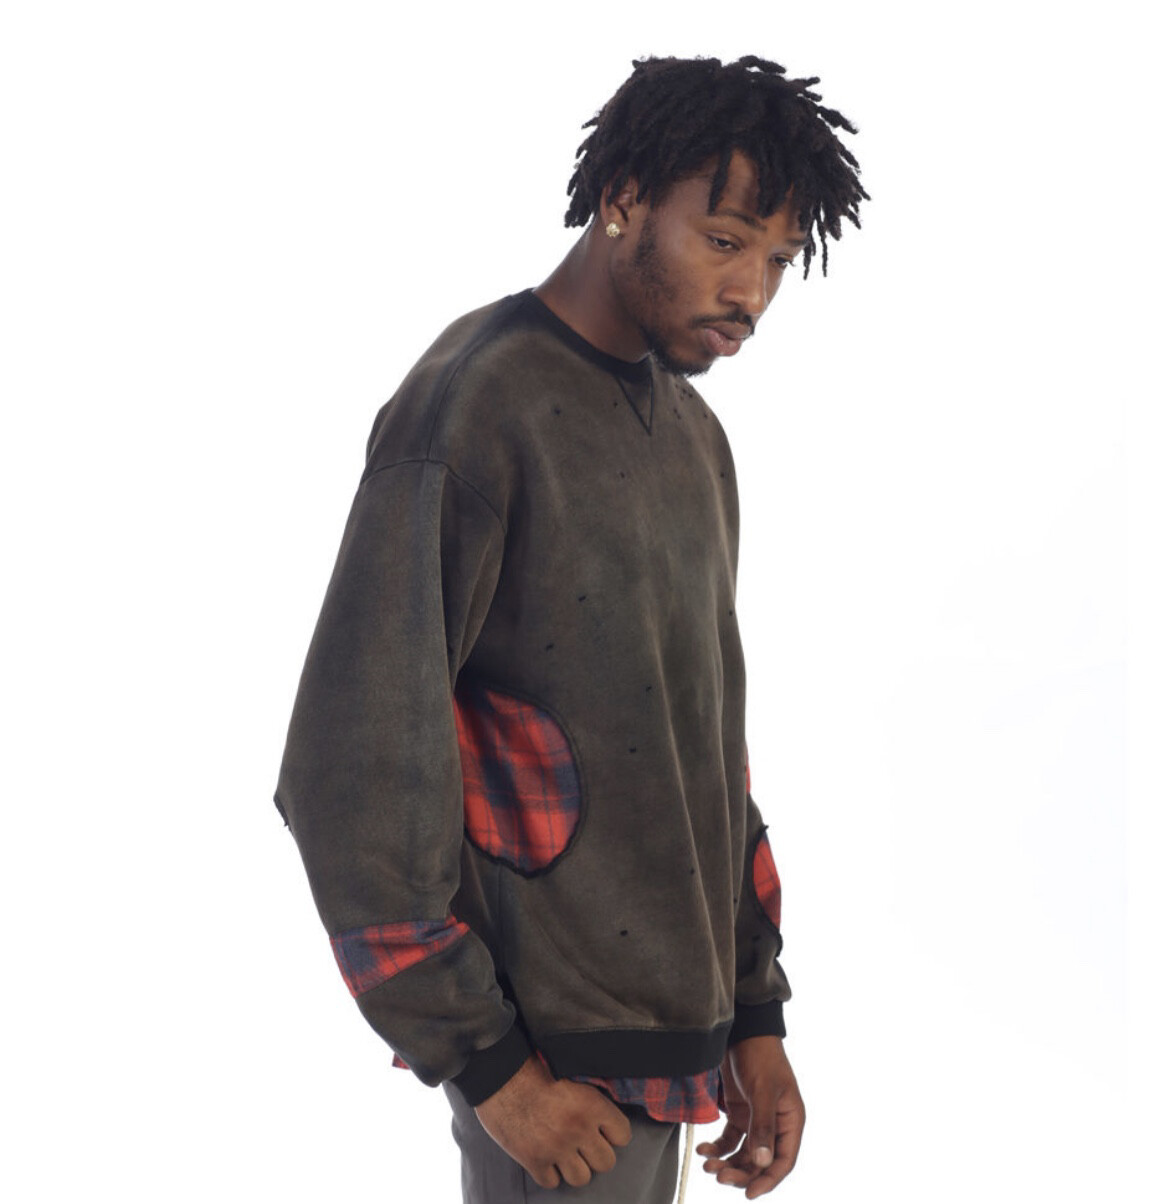 EPTM Butcher Crewneck Faded Black